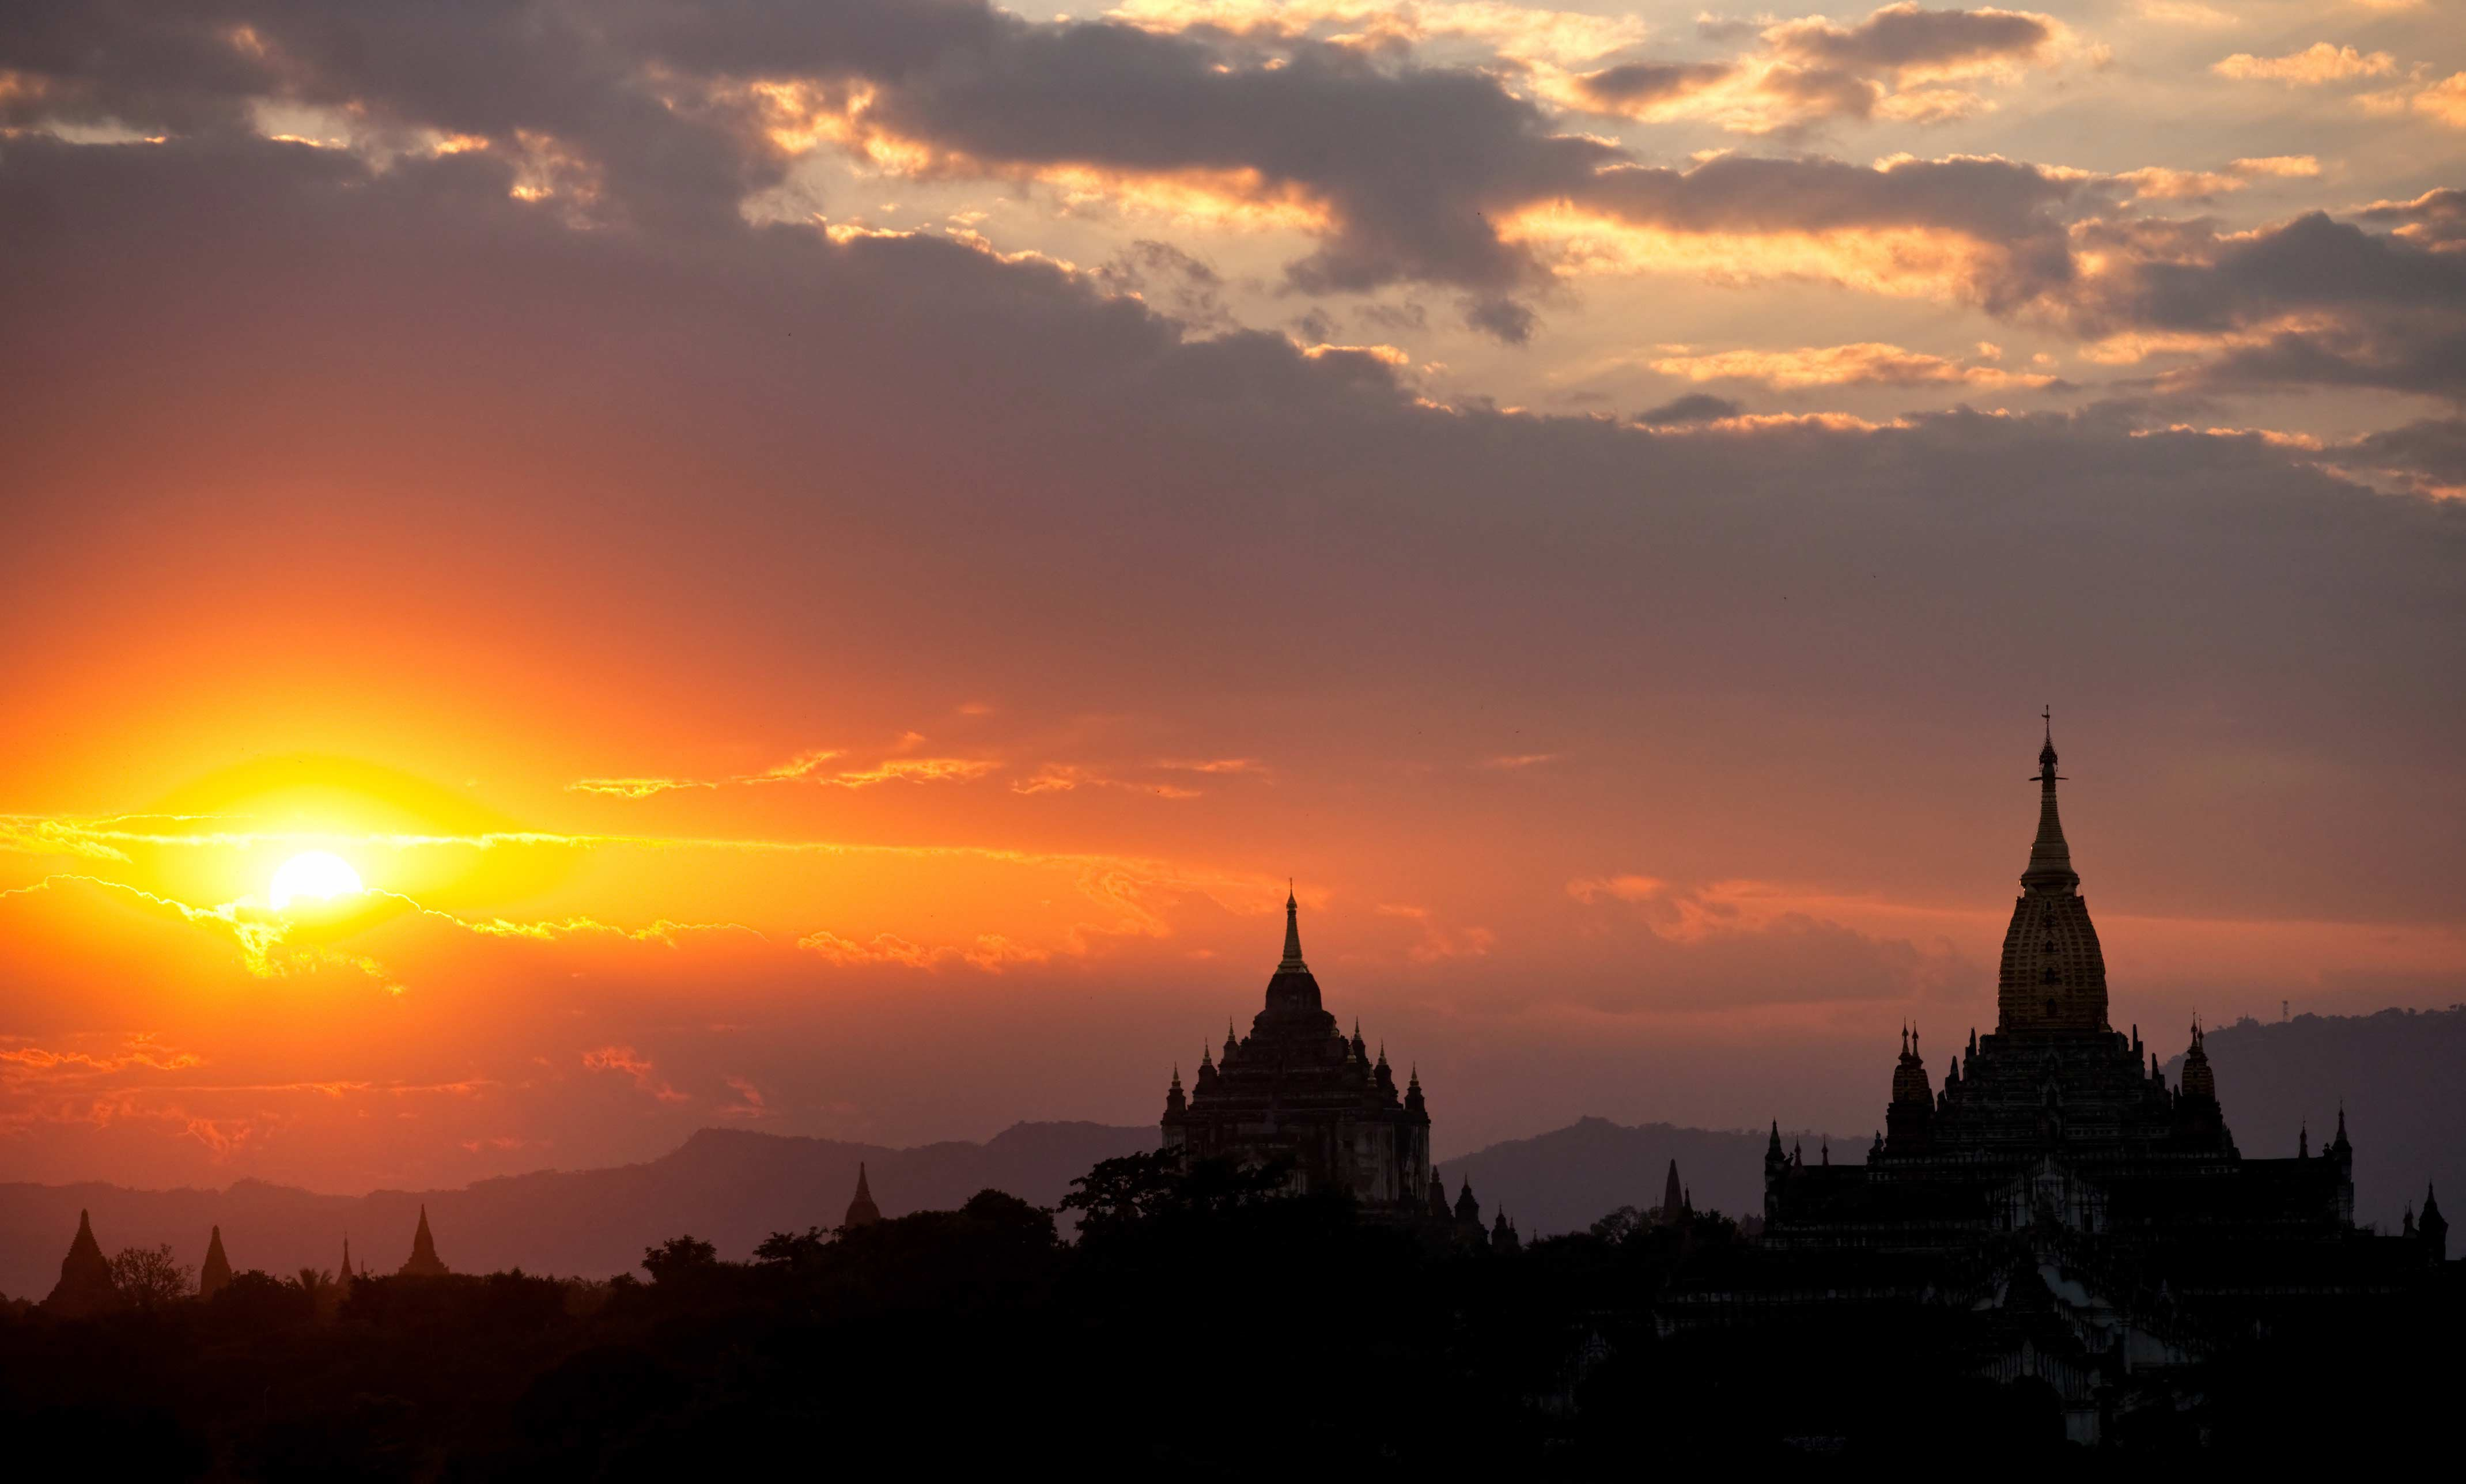 Sunset over Bagan, Myanmar/Burma